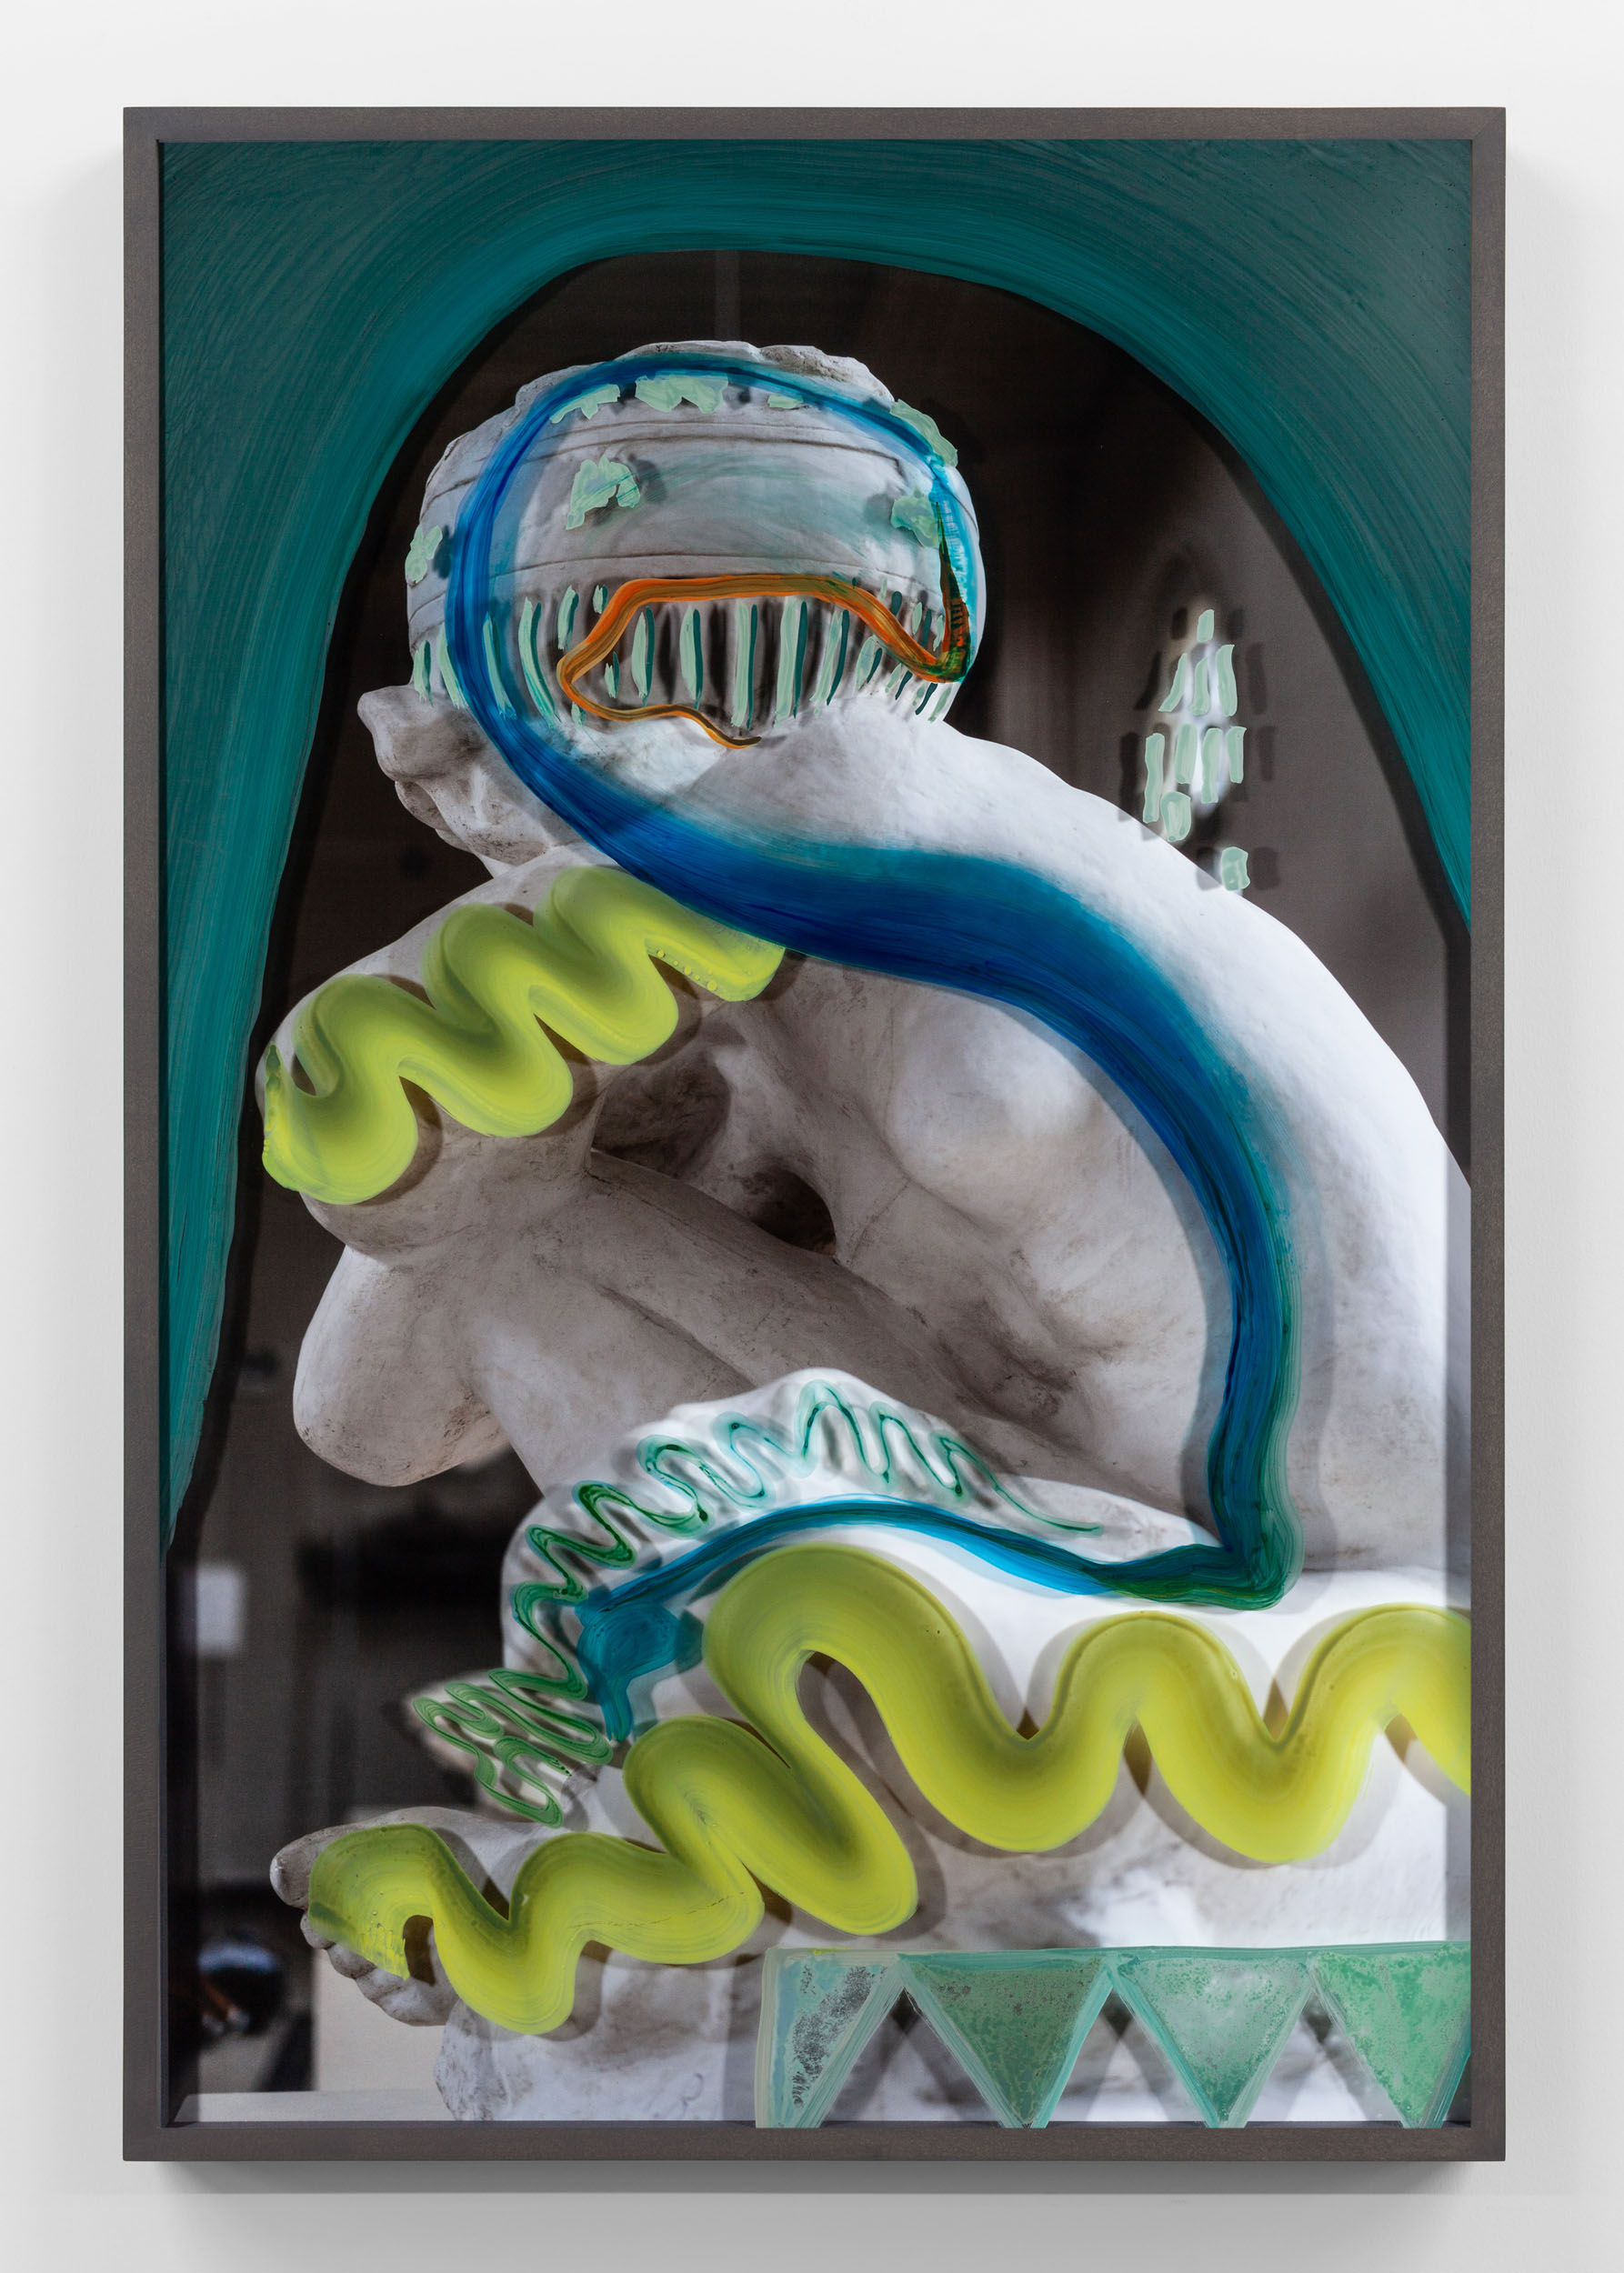 Unitlted (Fallen Caryatid with lime strokes) 2019, hand-painted museum acrylic over archival pigment print 91.5 x 61 cm / 36 x 24 in. Unique work